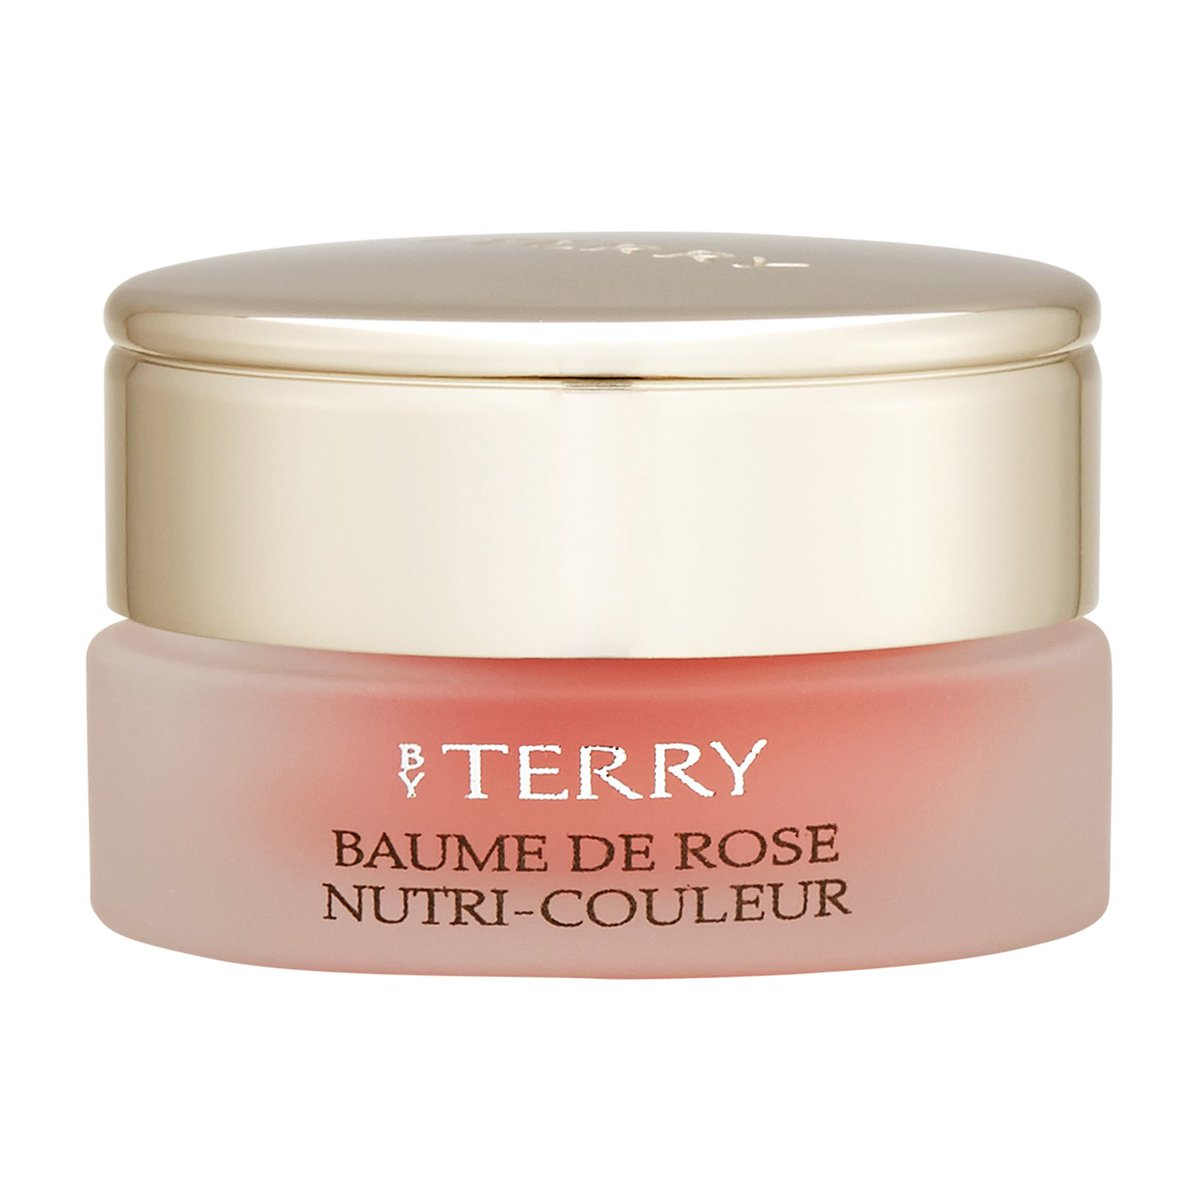 #By #Terry # #Baume #De #Rose #Nutri- at just $47.00 #Beauty #Essentials  #shop #ad #buy #product  http:// bit.ly/2pJzD6c  &nbsp;  <br>http://pic.twitter.com/Q1VPHRqnVj